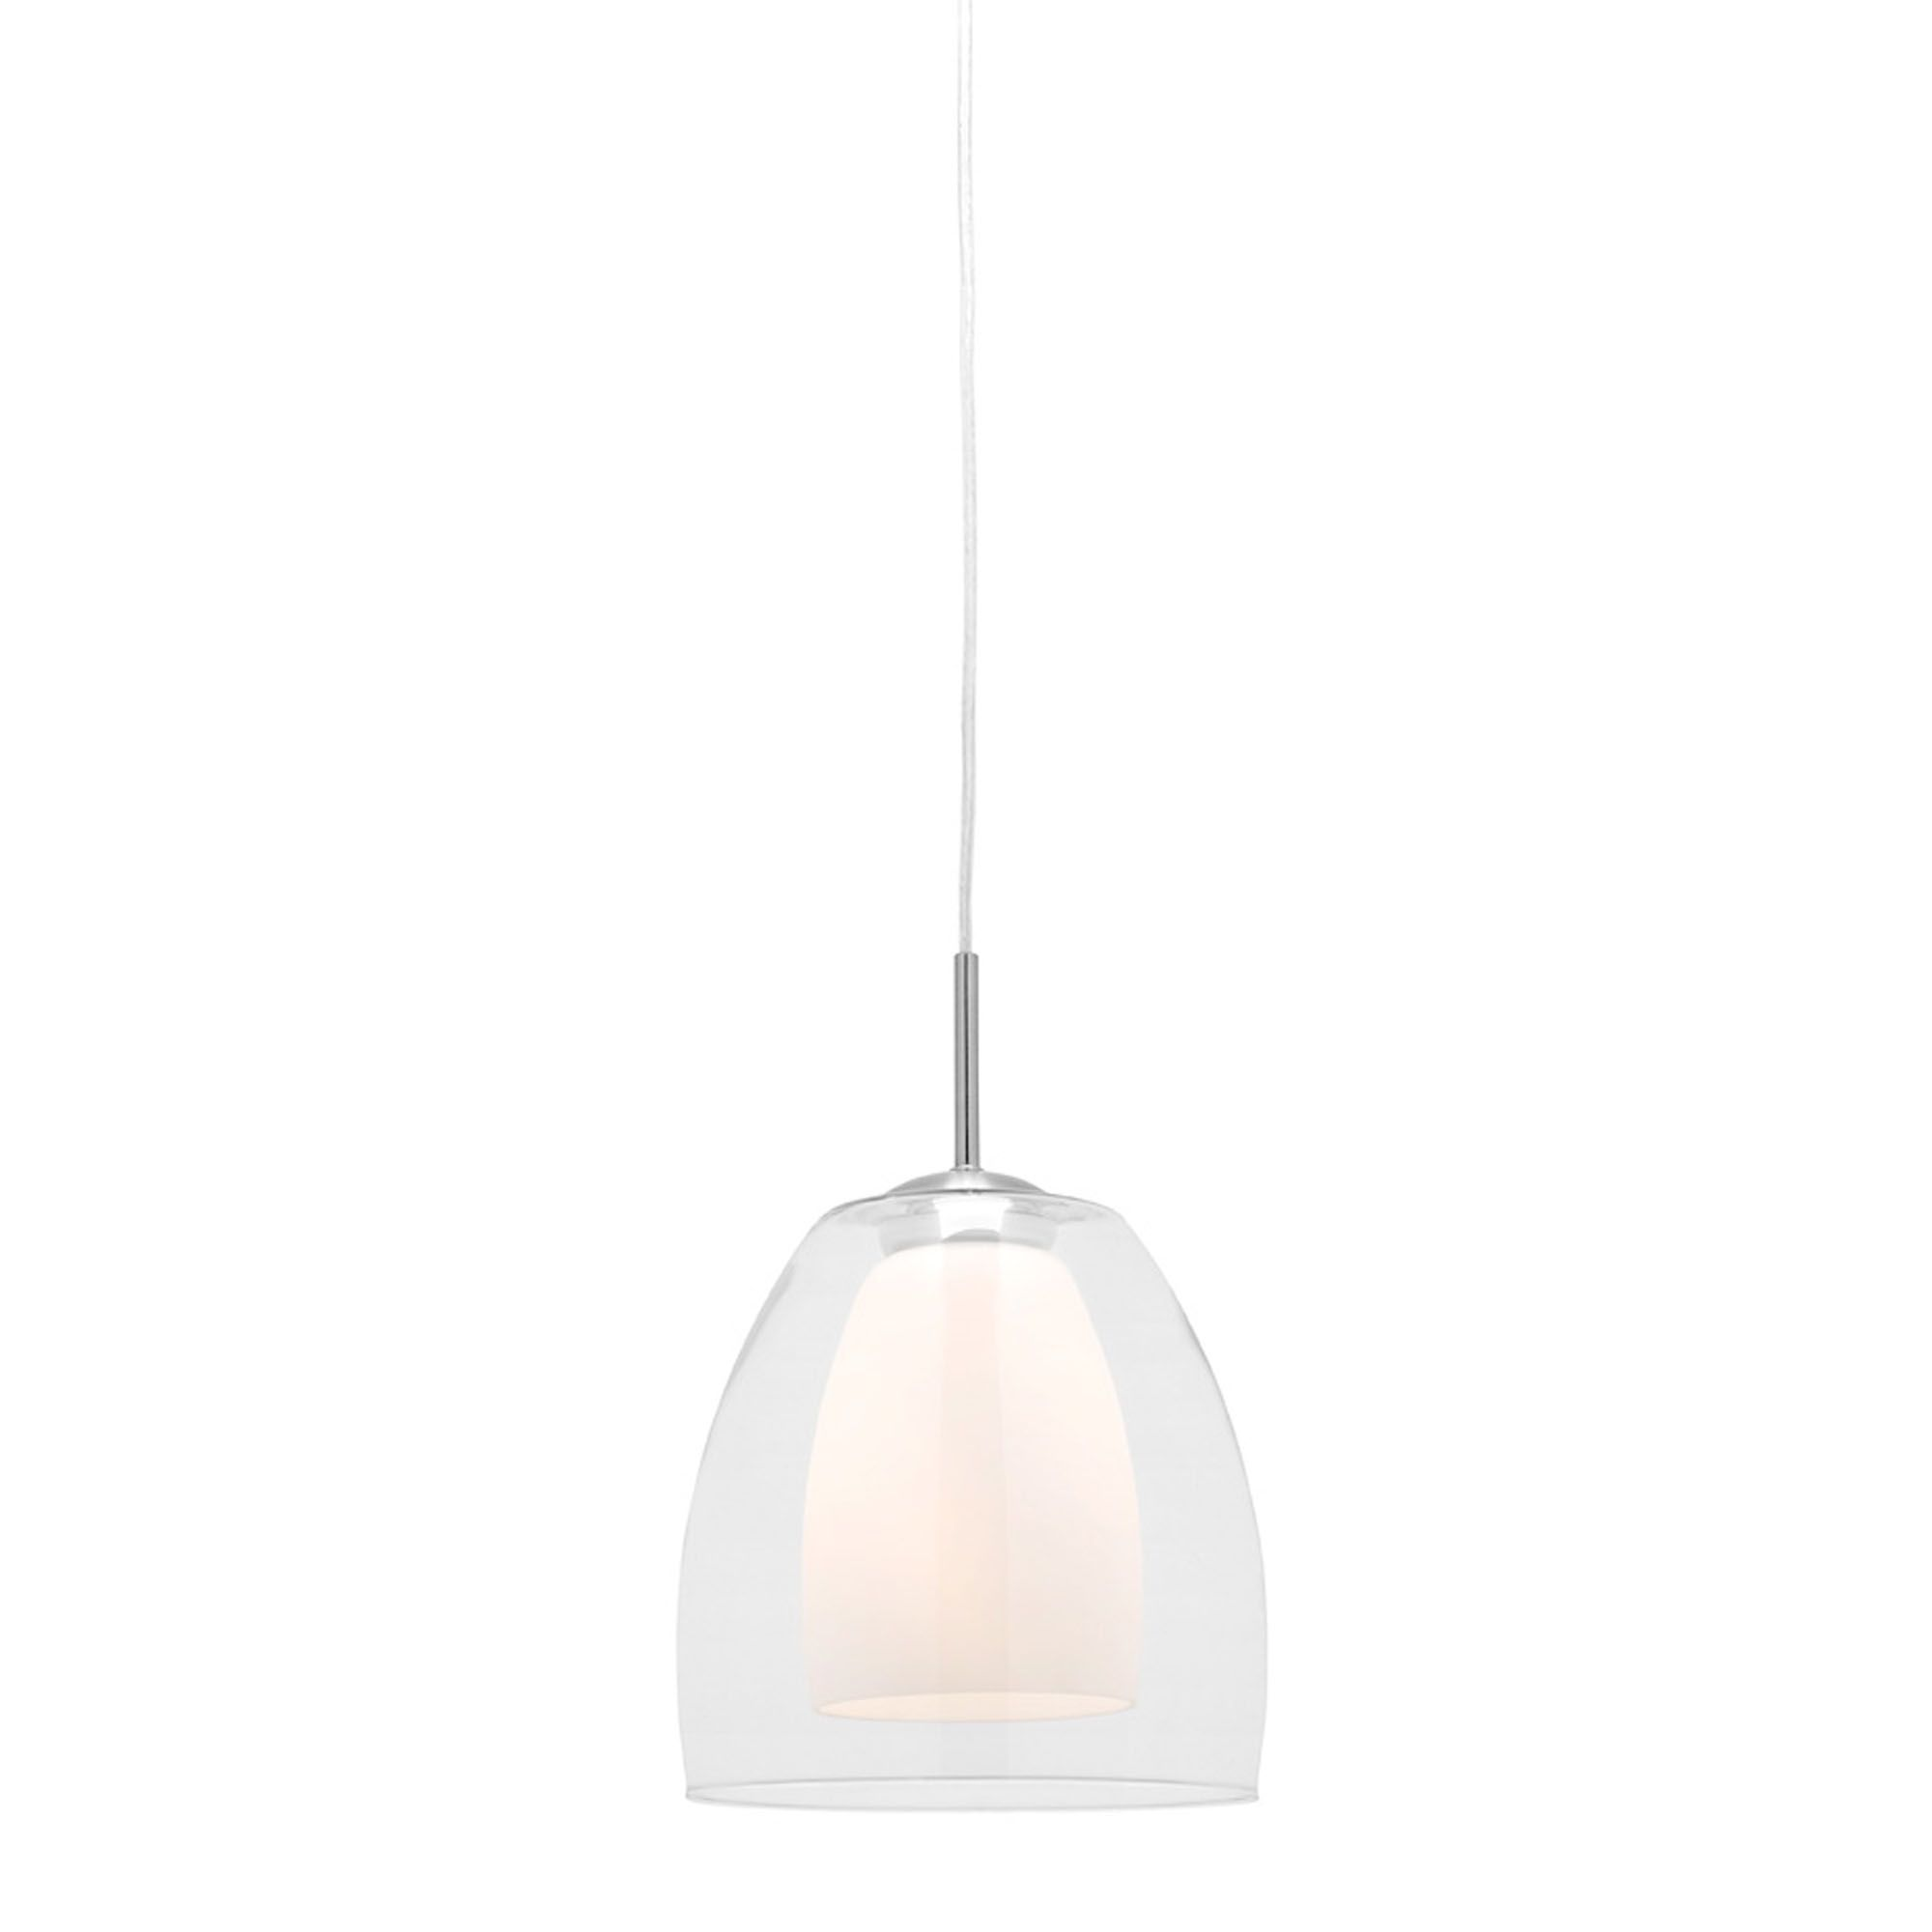 Large Aries Clear And Frosted Glass Shade Pendant Light Glass Shade Pendant Light Pendant Light Pendant Lighting